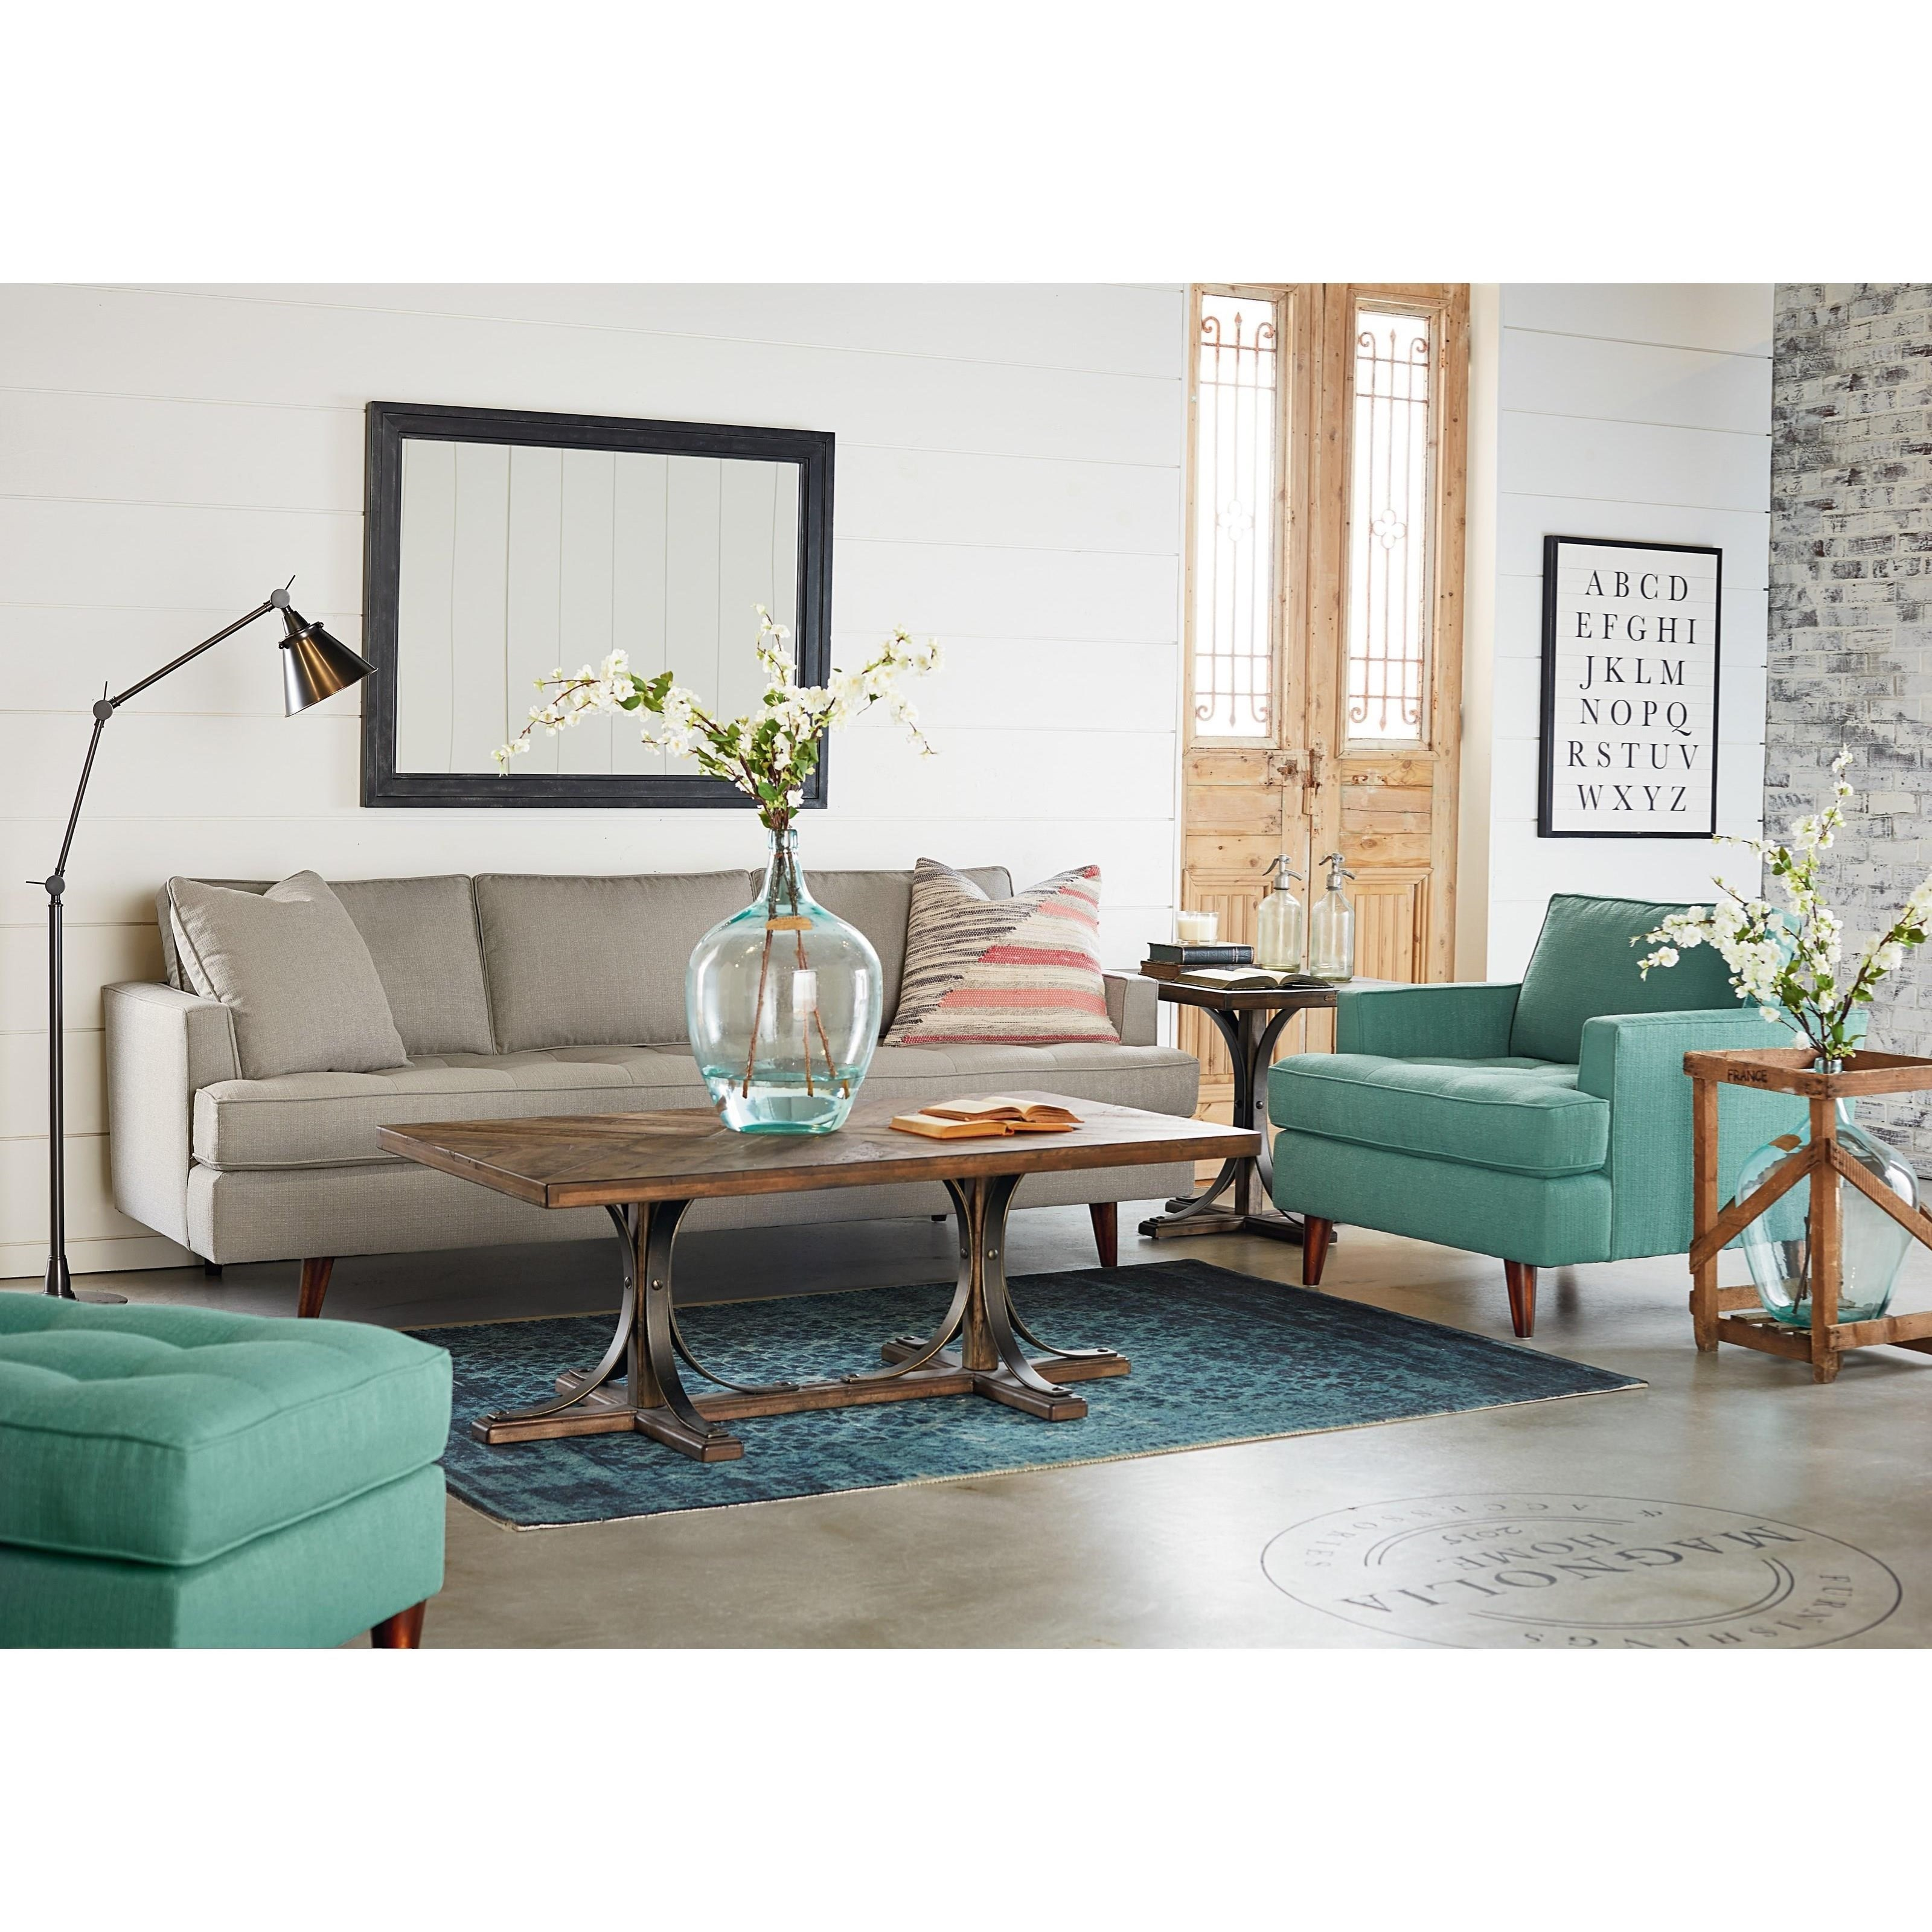 Sofa By Magnolia Home By Joanna Gaines Wolf And Gardiner Wolf Furniture